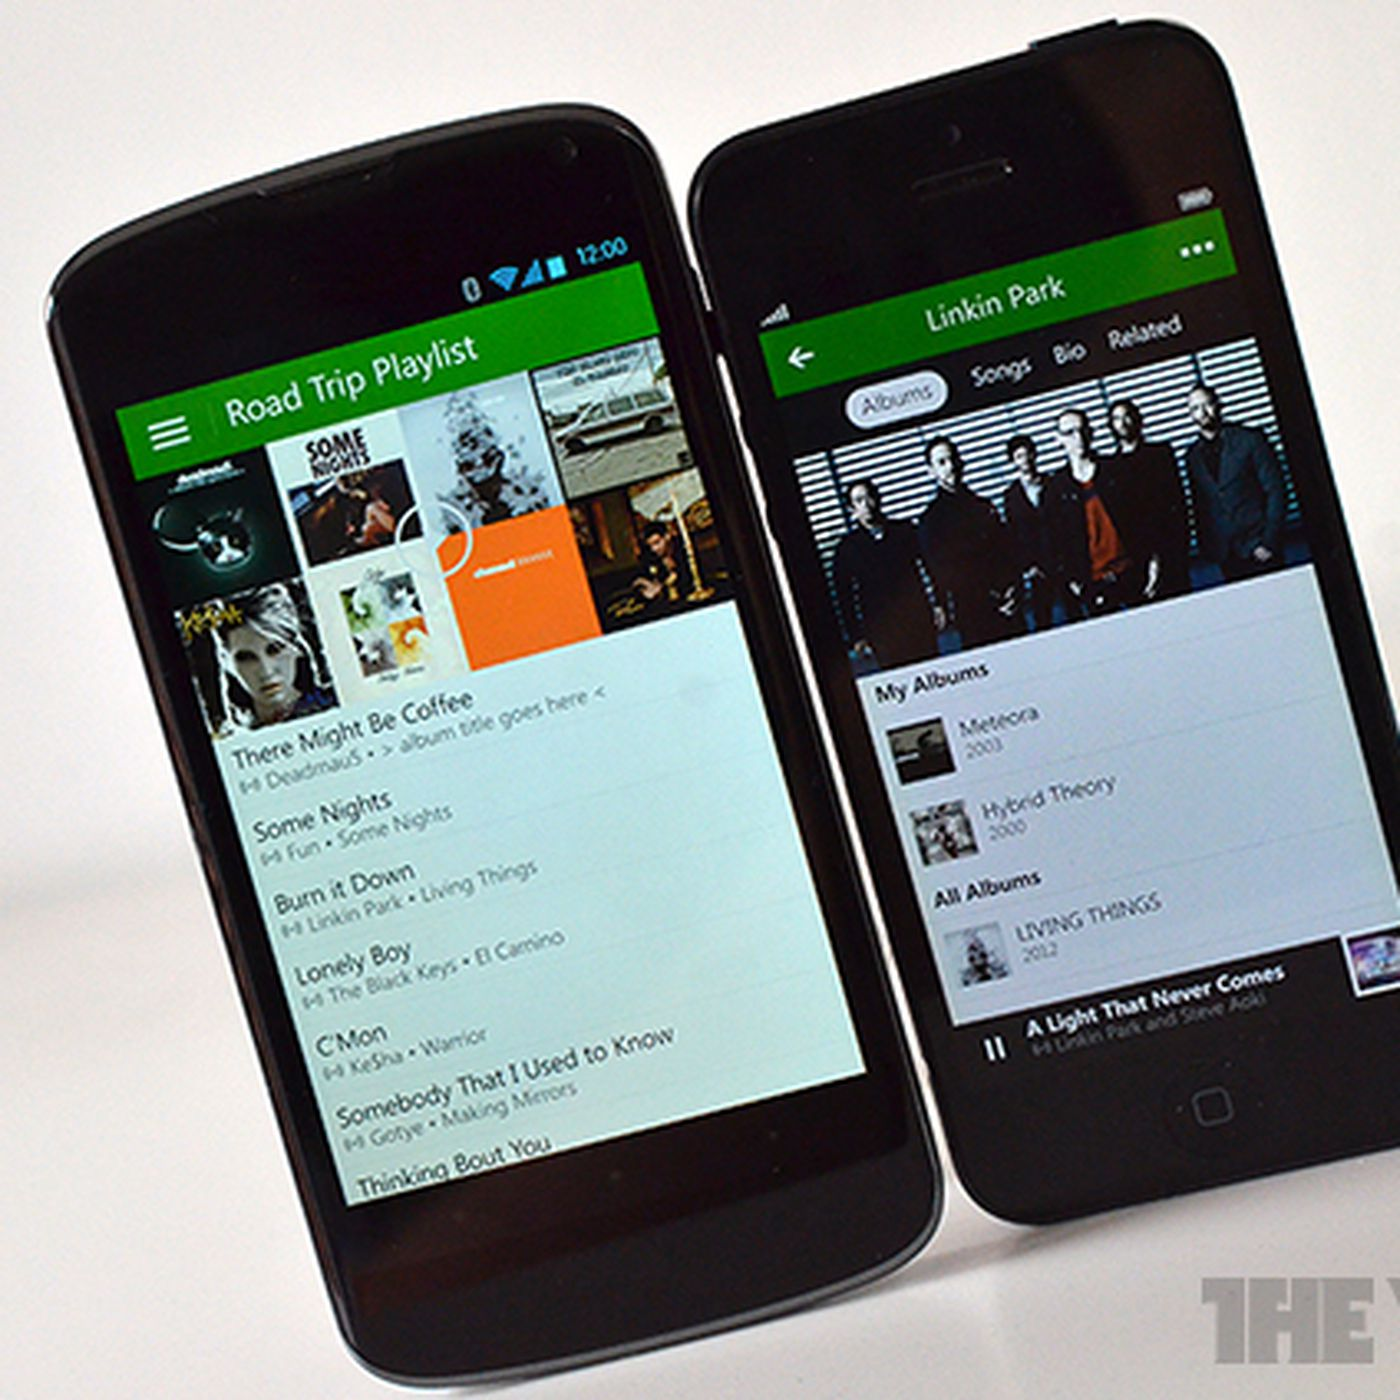 Xbox Music for iOS and Android now streams songs from